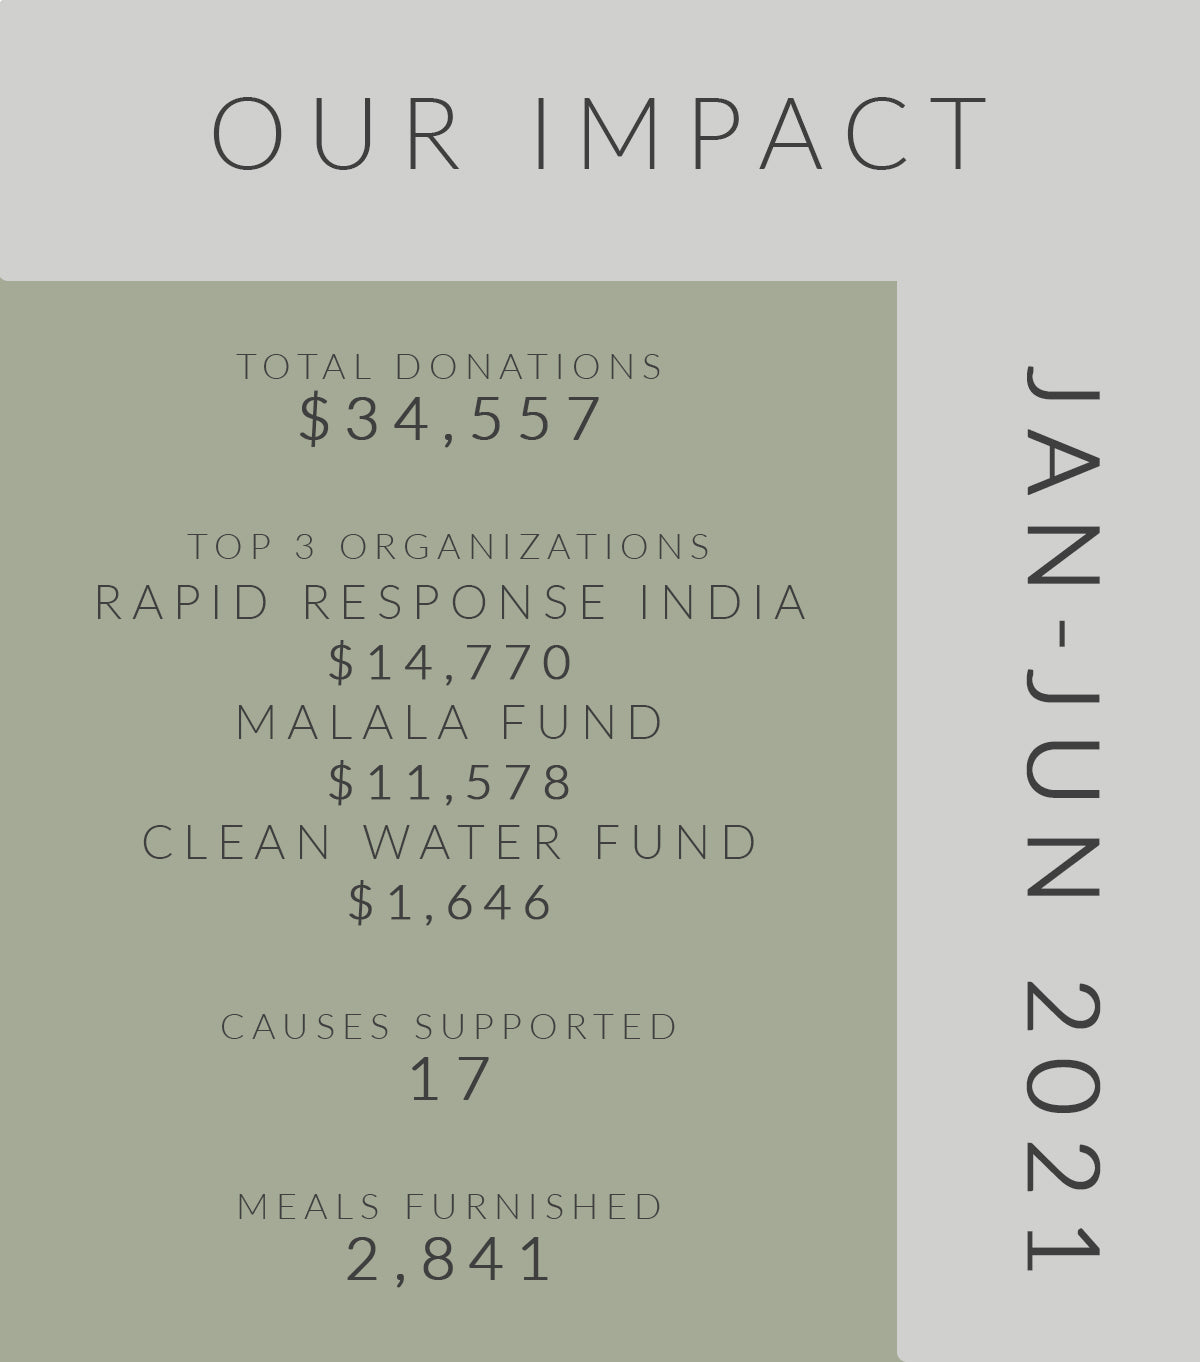 our impact q1 and q2 donations